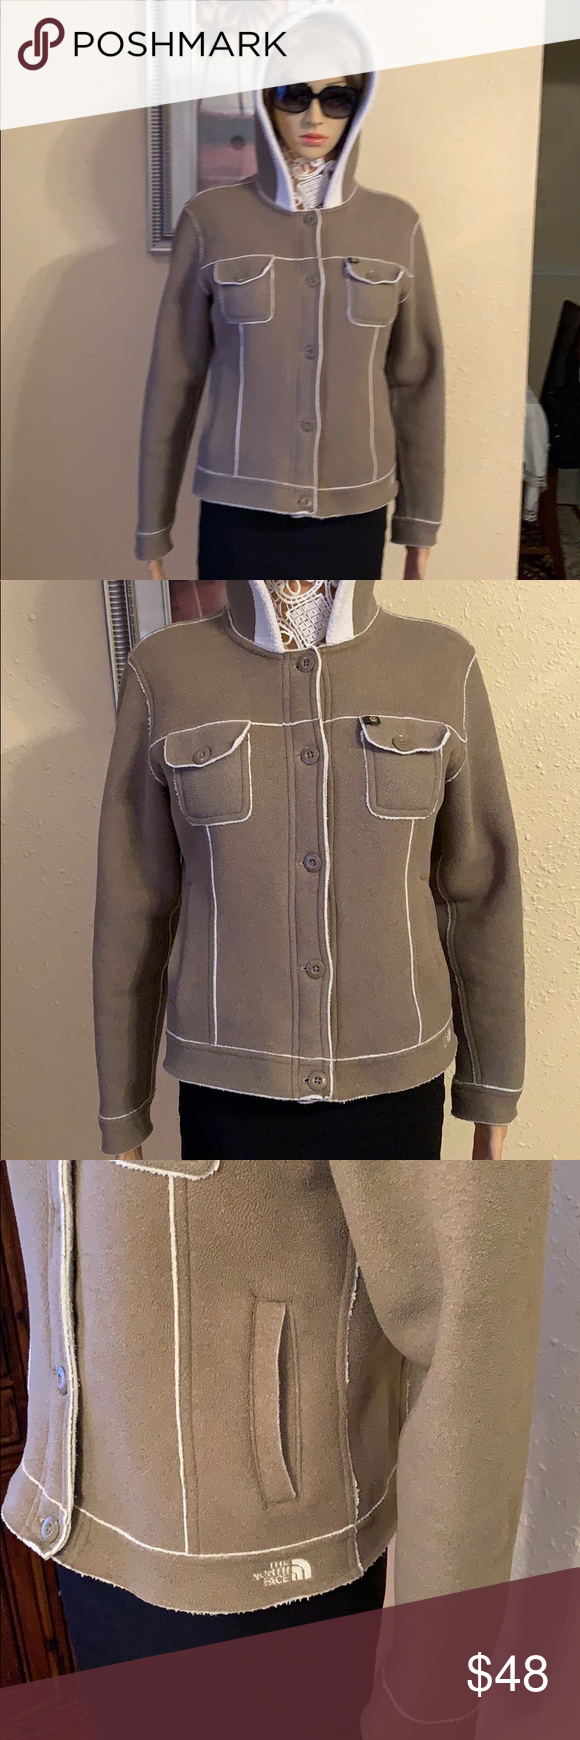 The North Face 3 4 Long Jacket Long Jackets Jackets Clothes Design [ 1740 x 580 Pixel ]